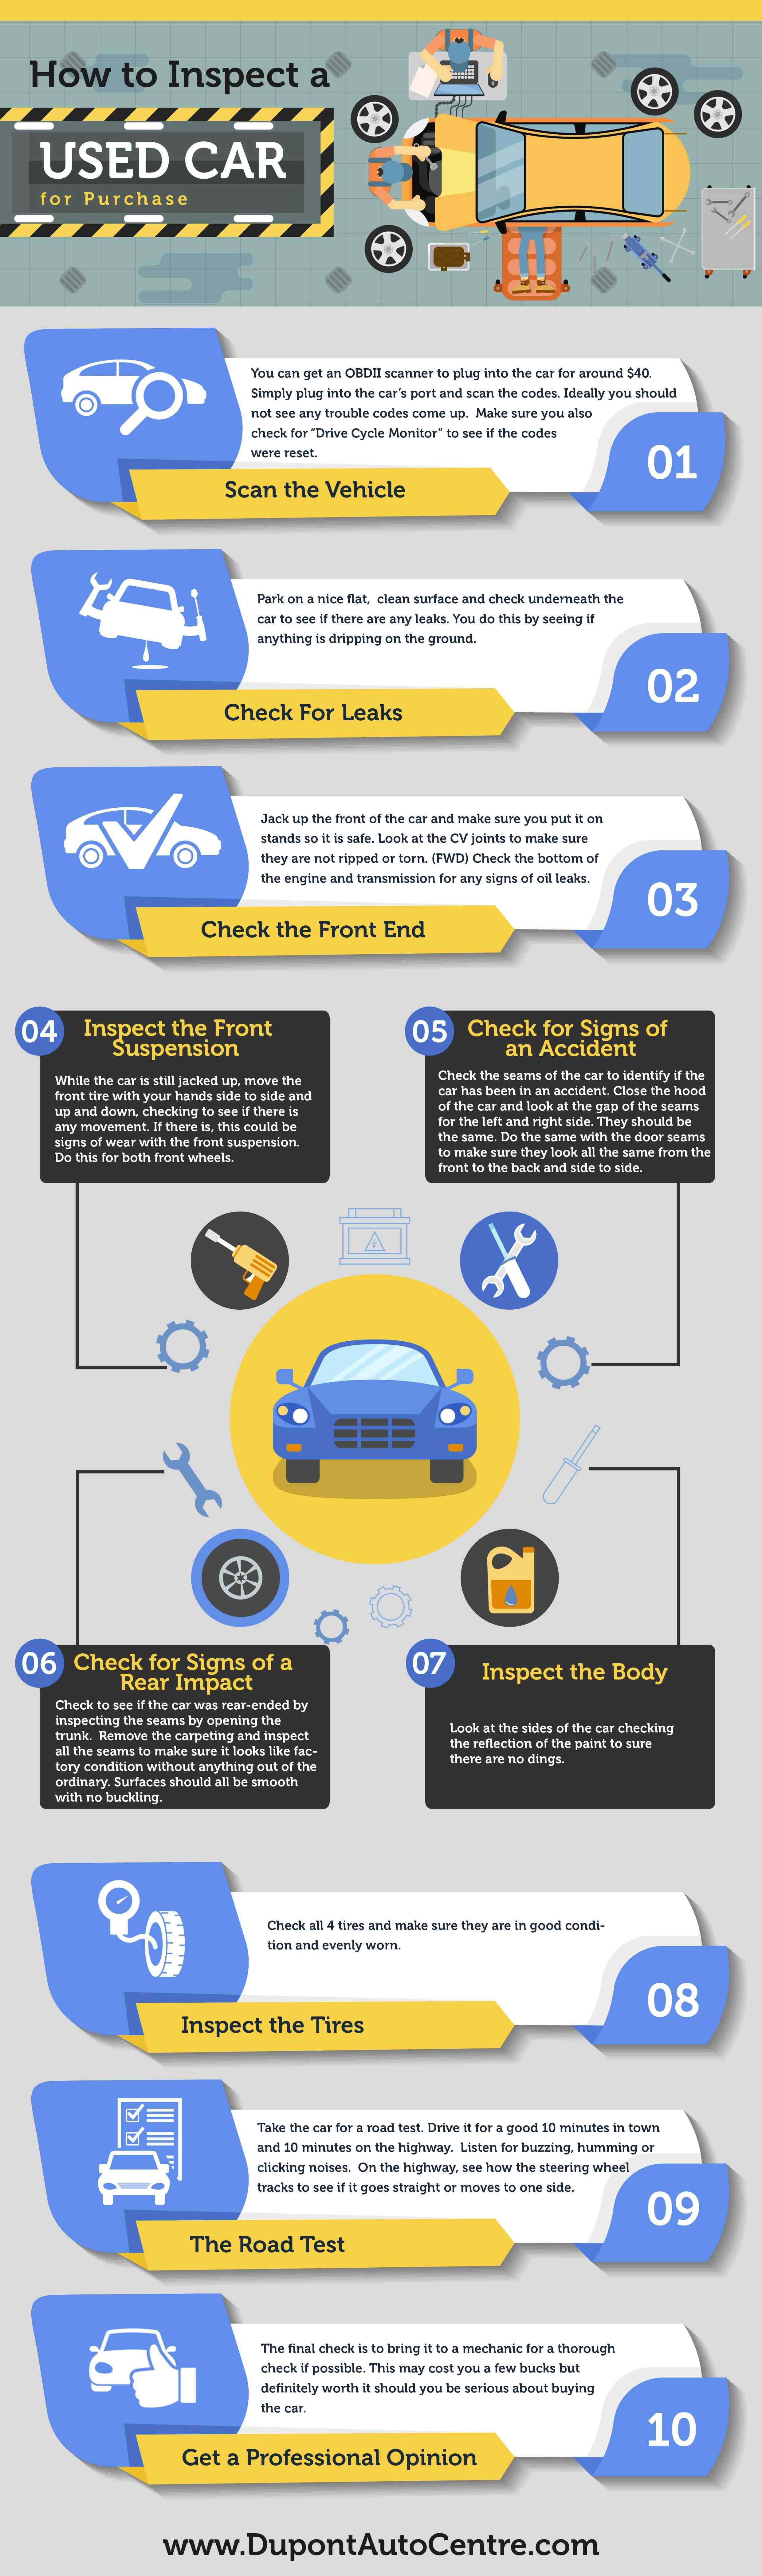 How-to-inspect-used-car-1.jpg